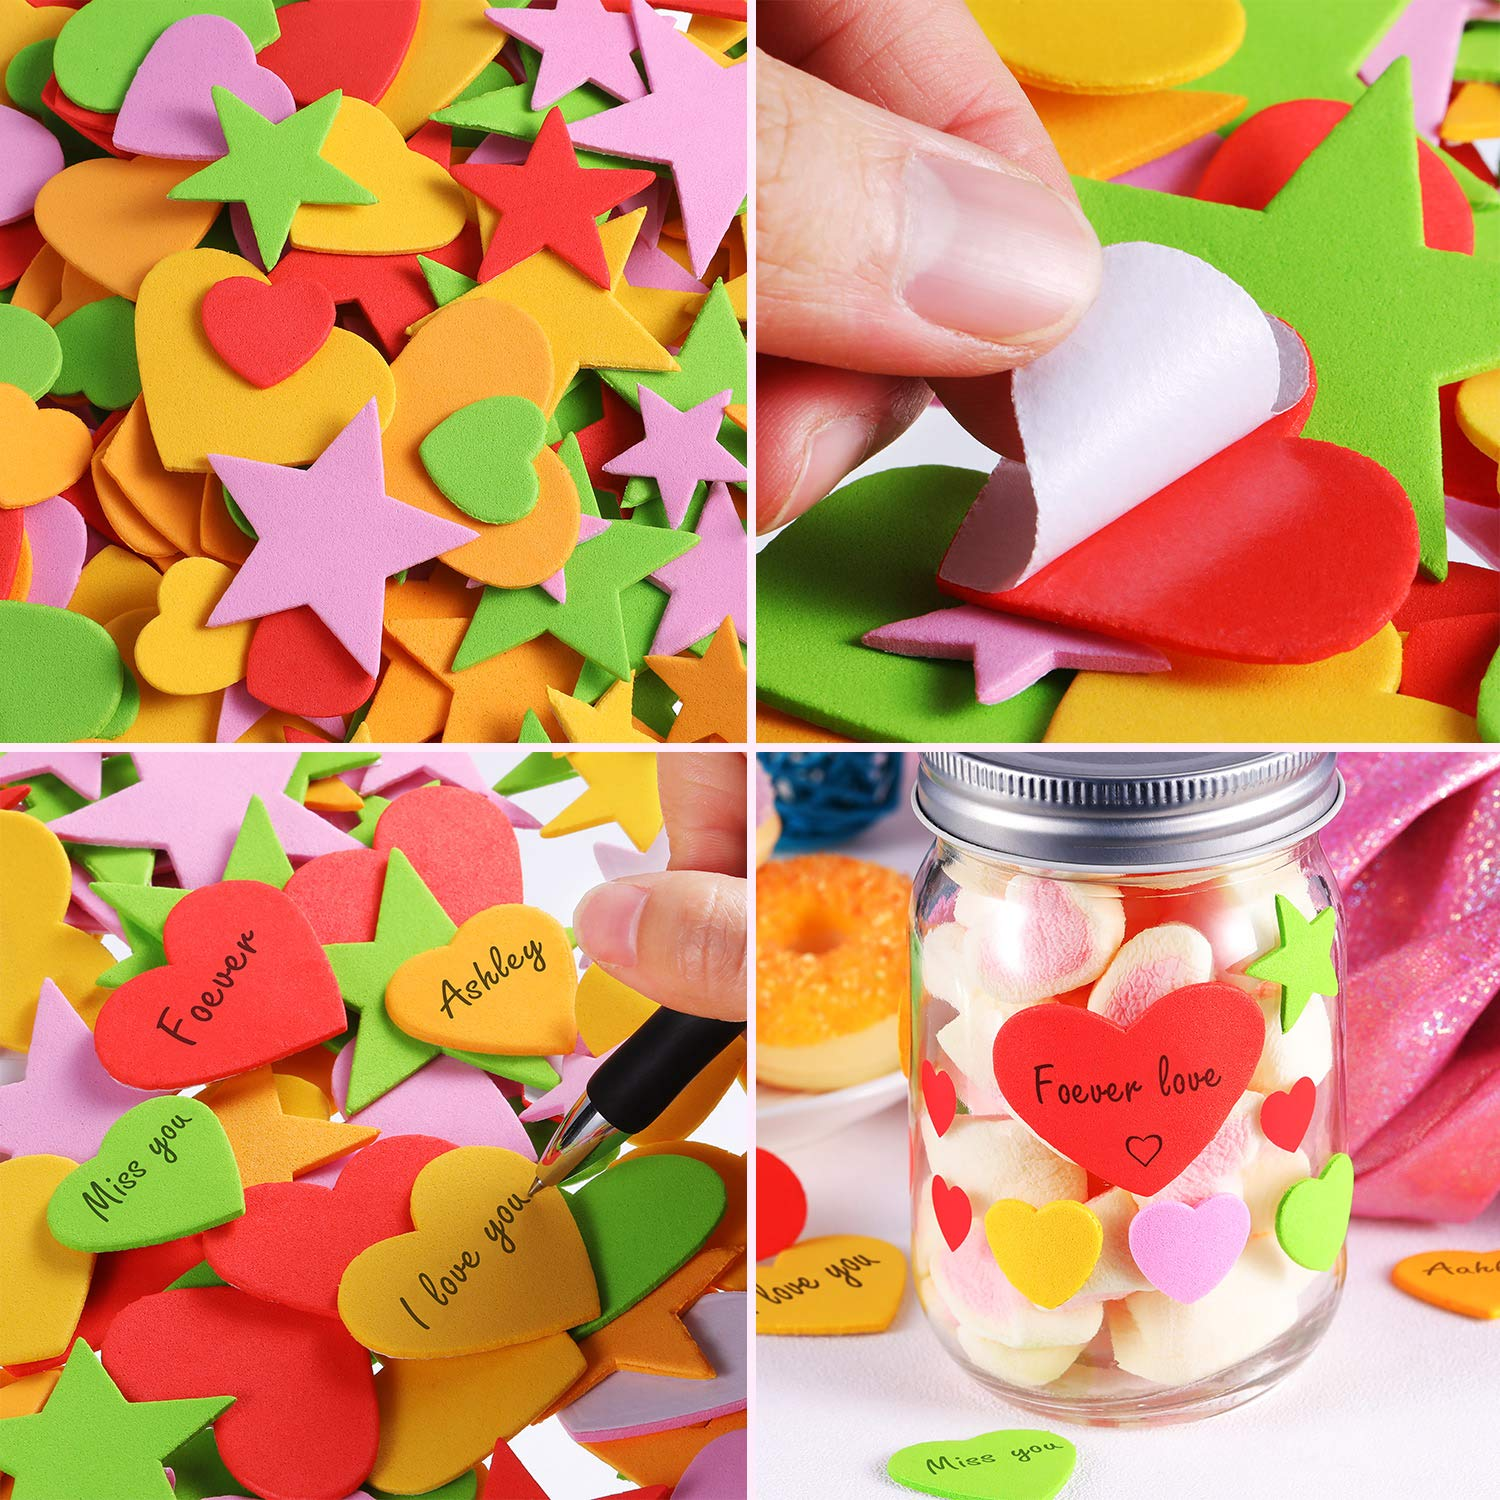 Leinuosen 500 Pieces Foam Heart Stickers Self Adhesive Hearts Decals for Valentines Day Mini Heart Shaped Stickers for Arts Craft Greeting Cards for Valentines Day Decoration Greeting Cards for Valentine/'s Day Decoration